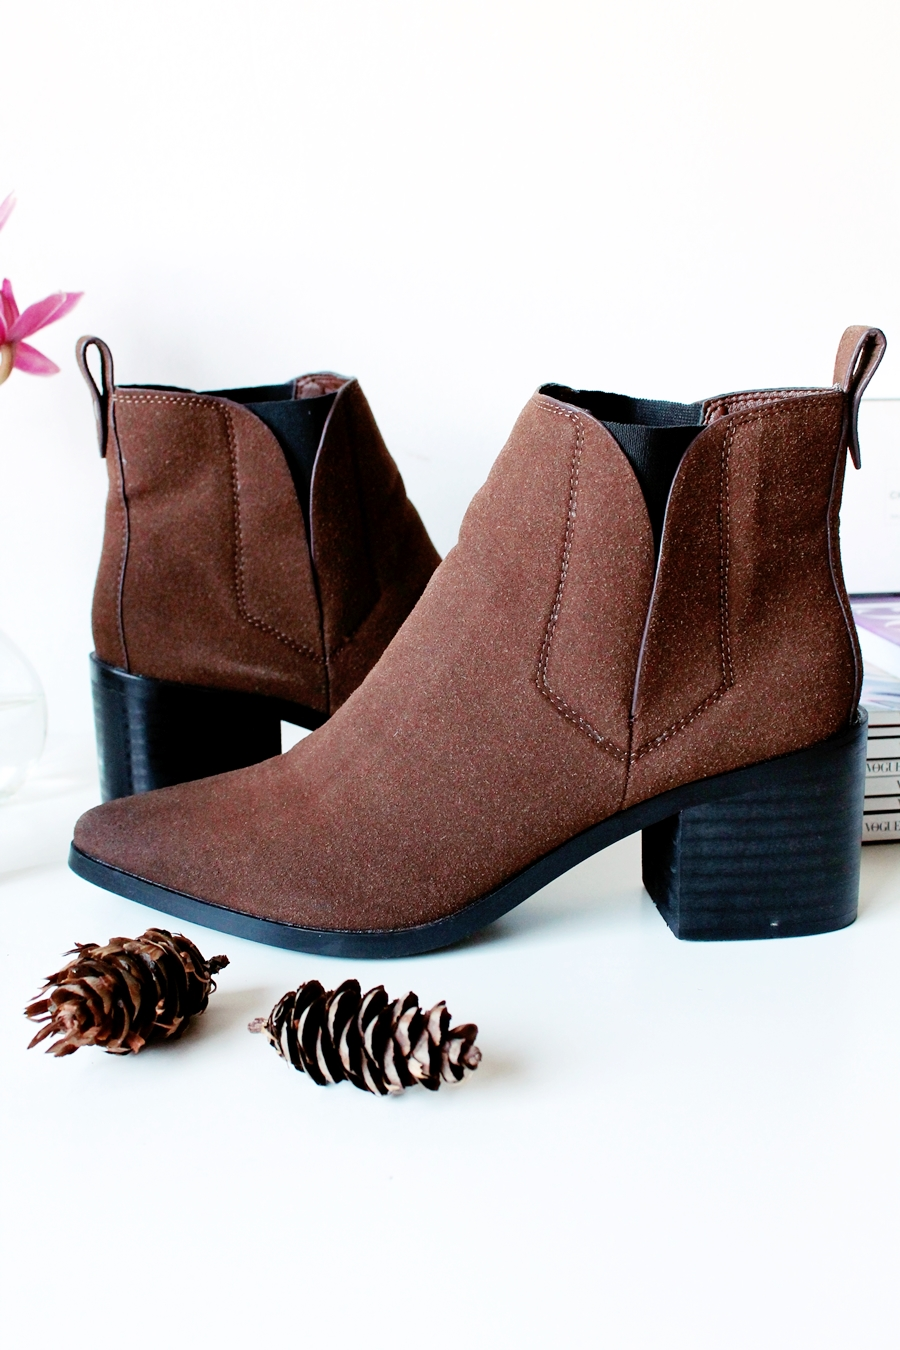 BROWN BOOTS (2)